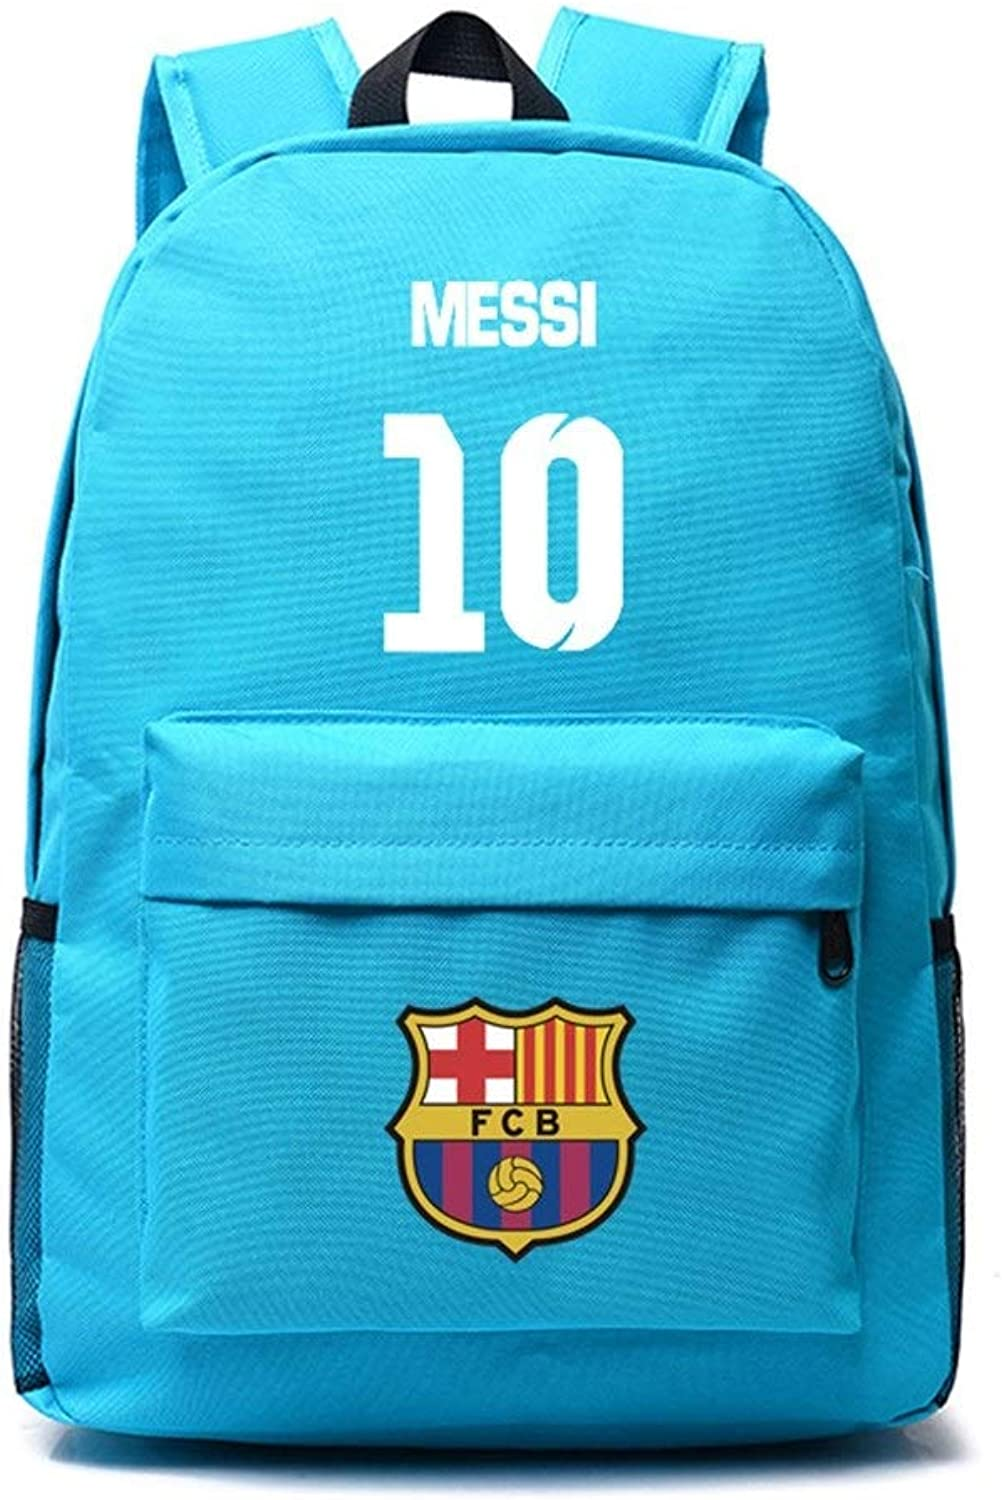 HAOYUSHANGMAO Backpack, Student Bag, Oxford Backpack, Wild Football Bag, Best Gift Latest Models